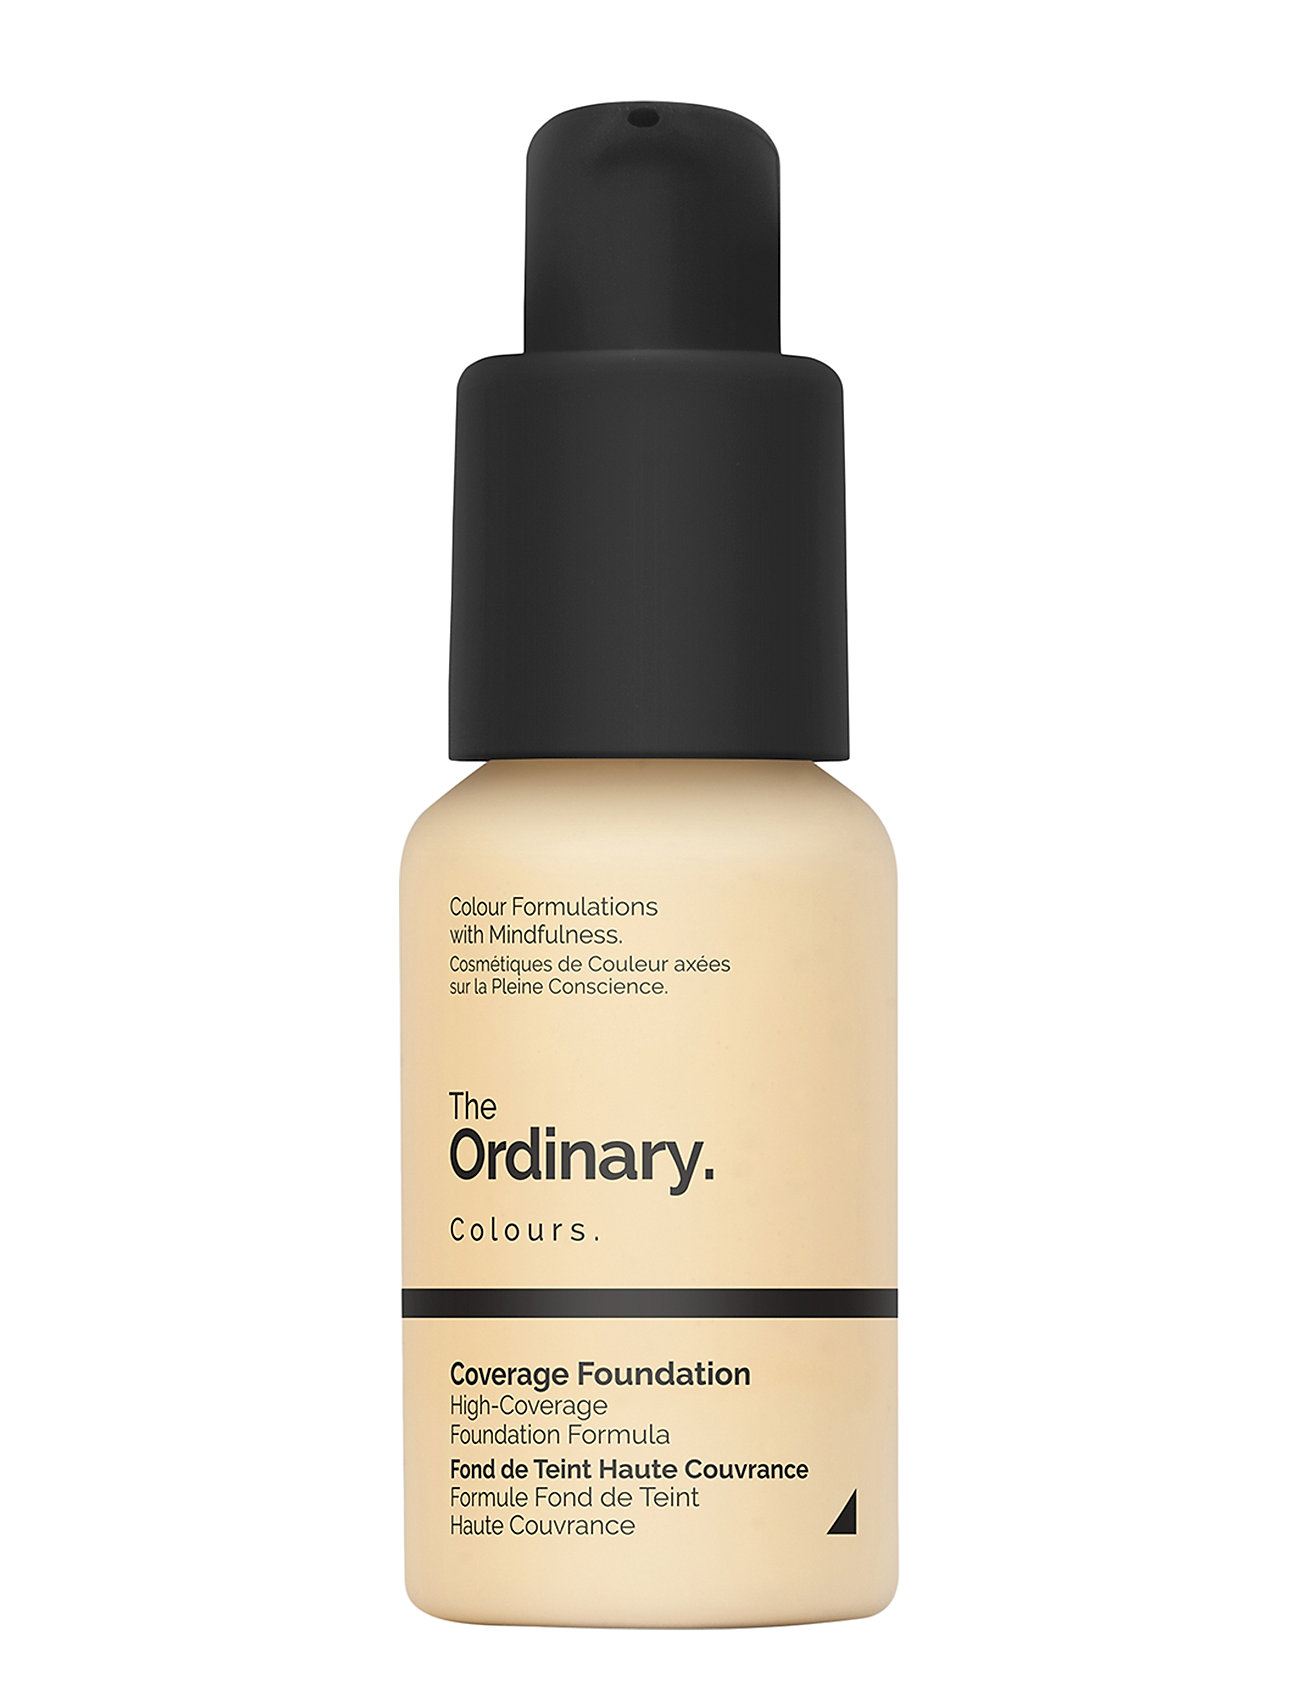 Image of Coverage Foundation 1.2 Y Light Yellow Foundation Makeup The Ordinary (3196660357)